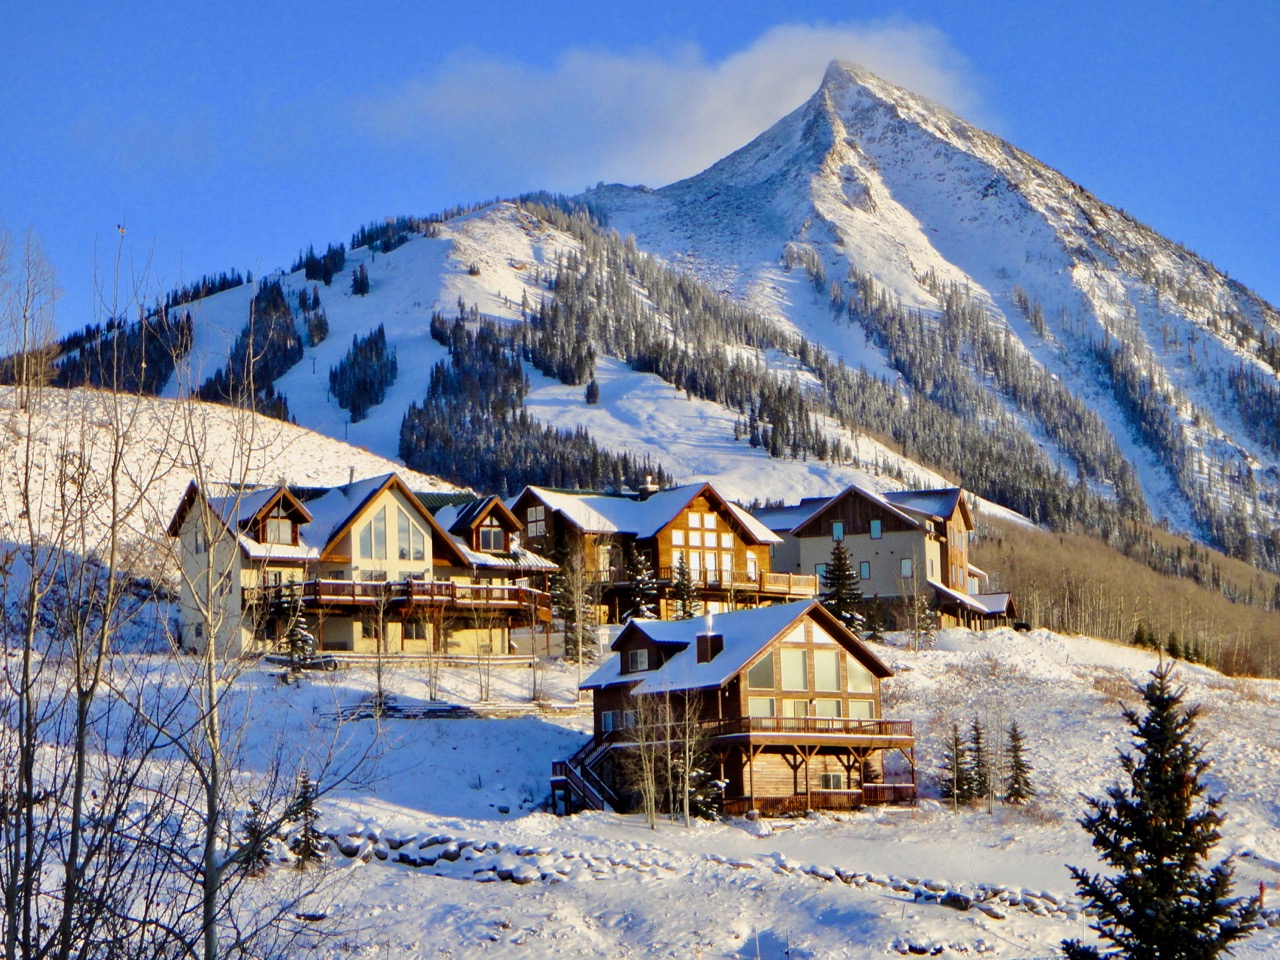 Skiing Up in Crested Butte